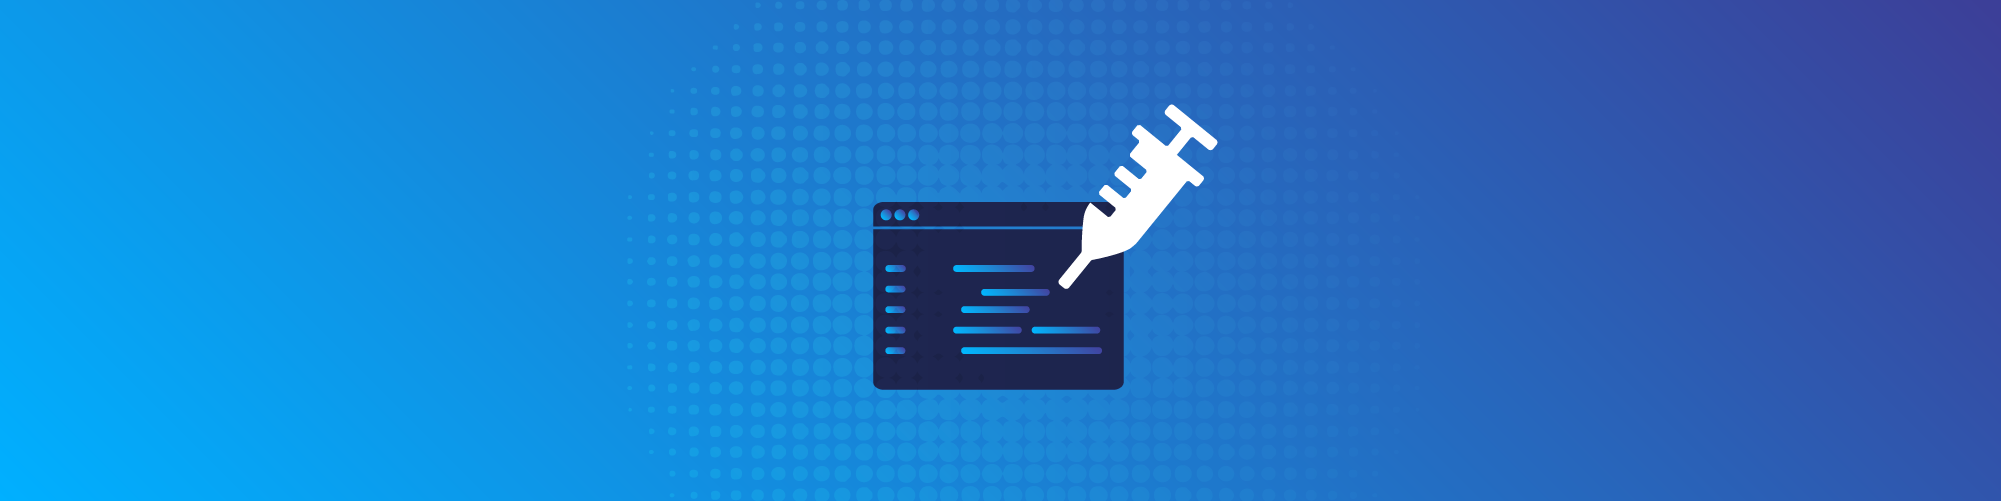 Prevent code injection vulnerabilities with Snyk